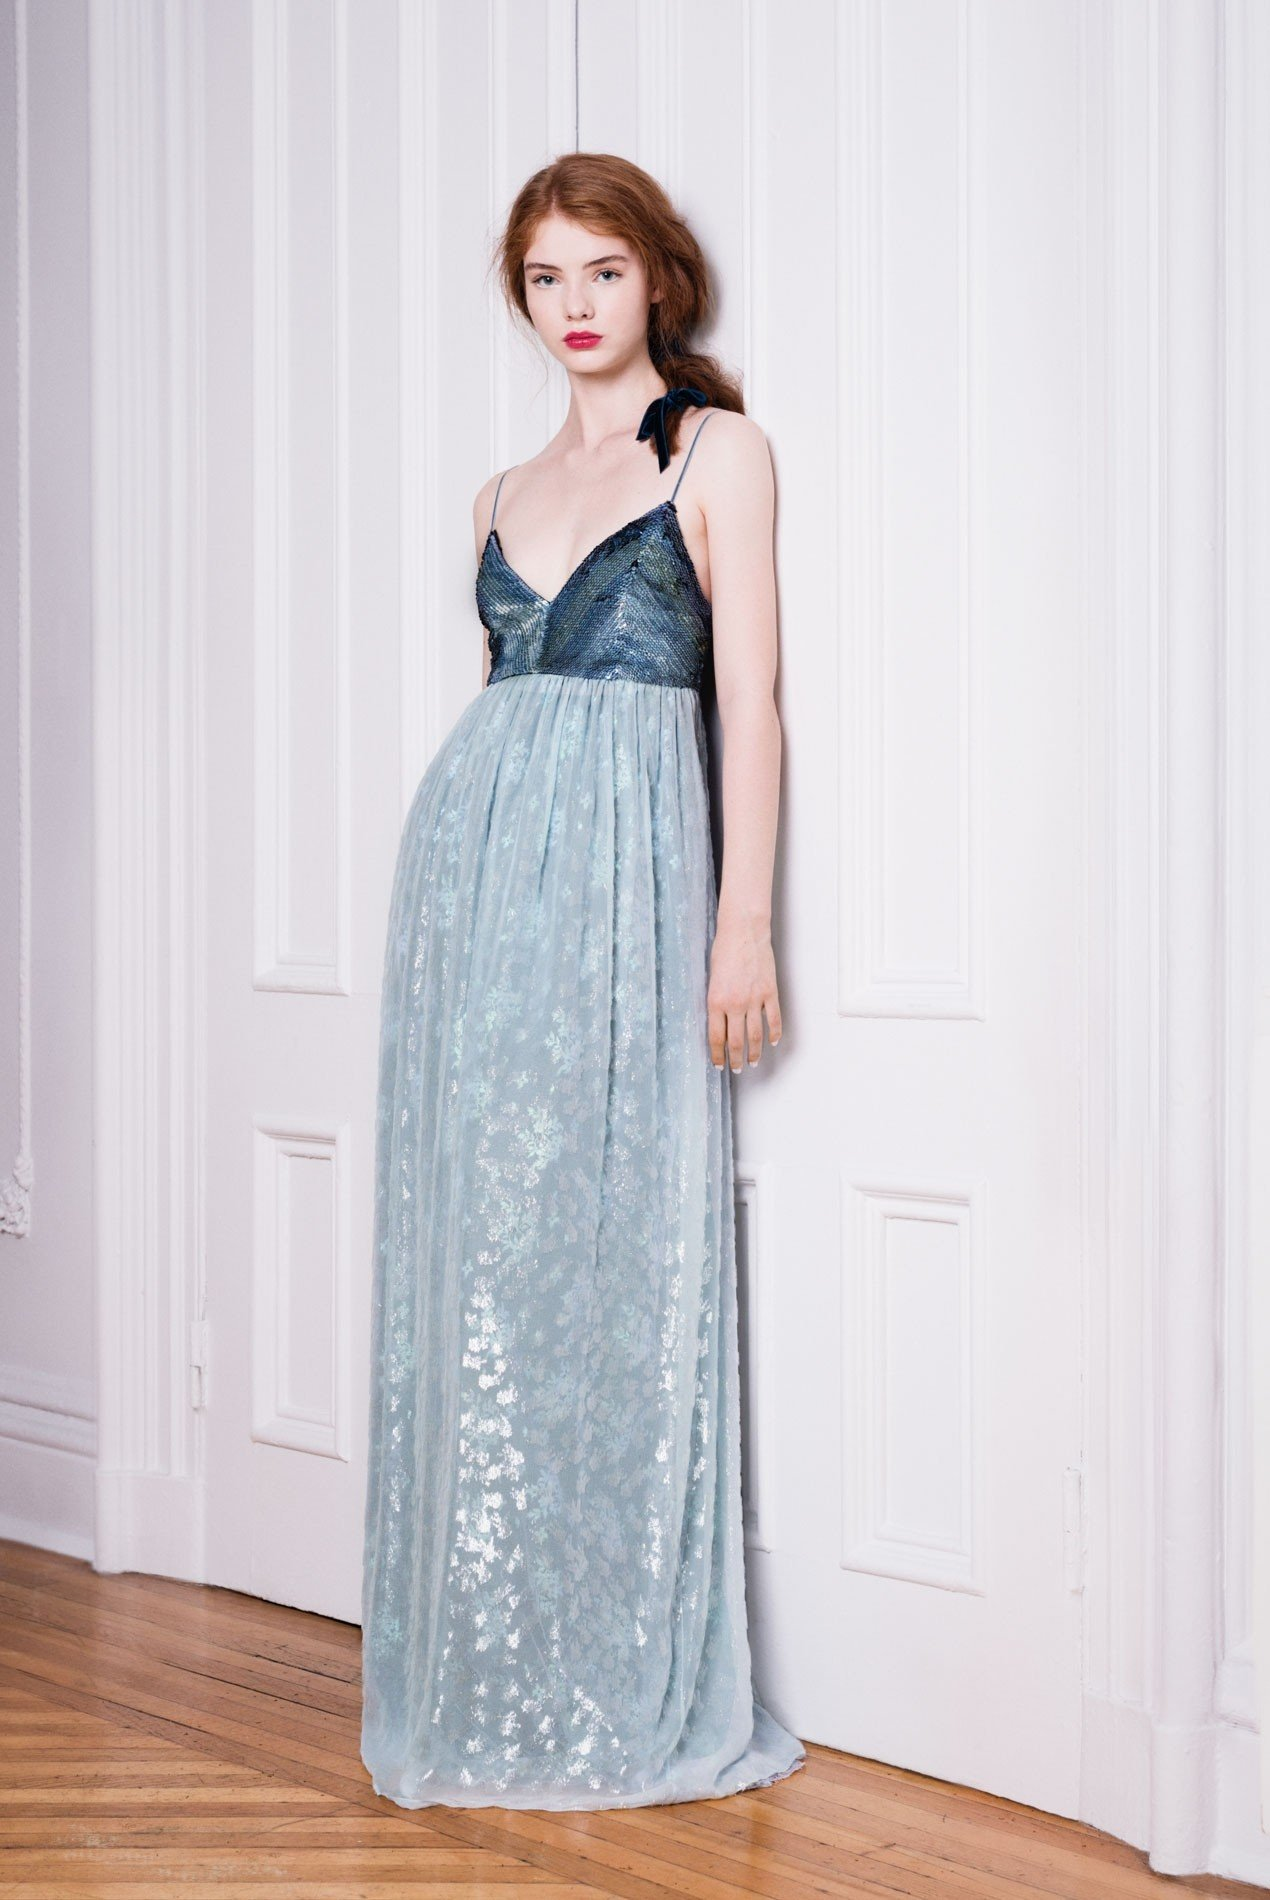 Panne velvet and lace gown with hand-beaded bodice